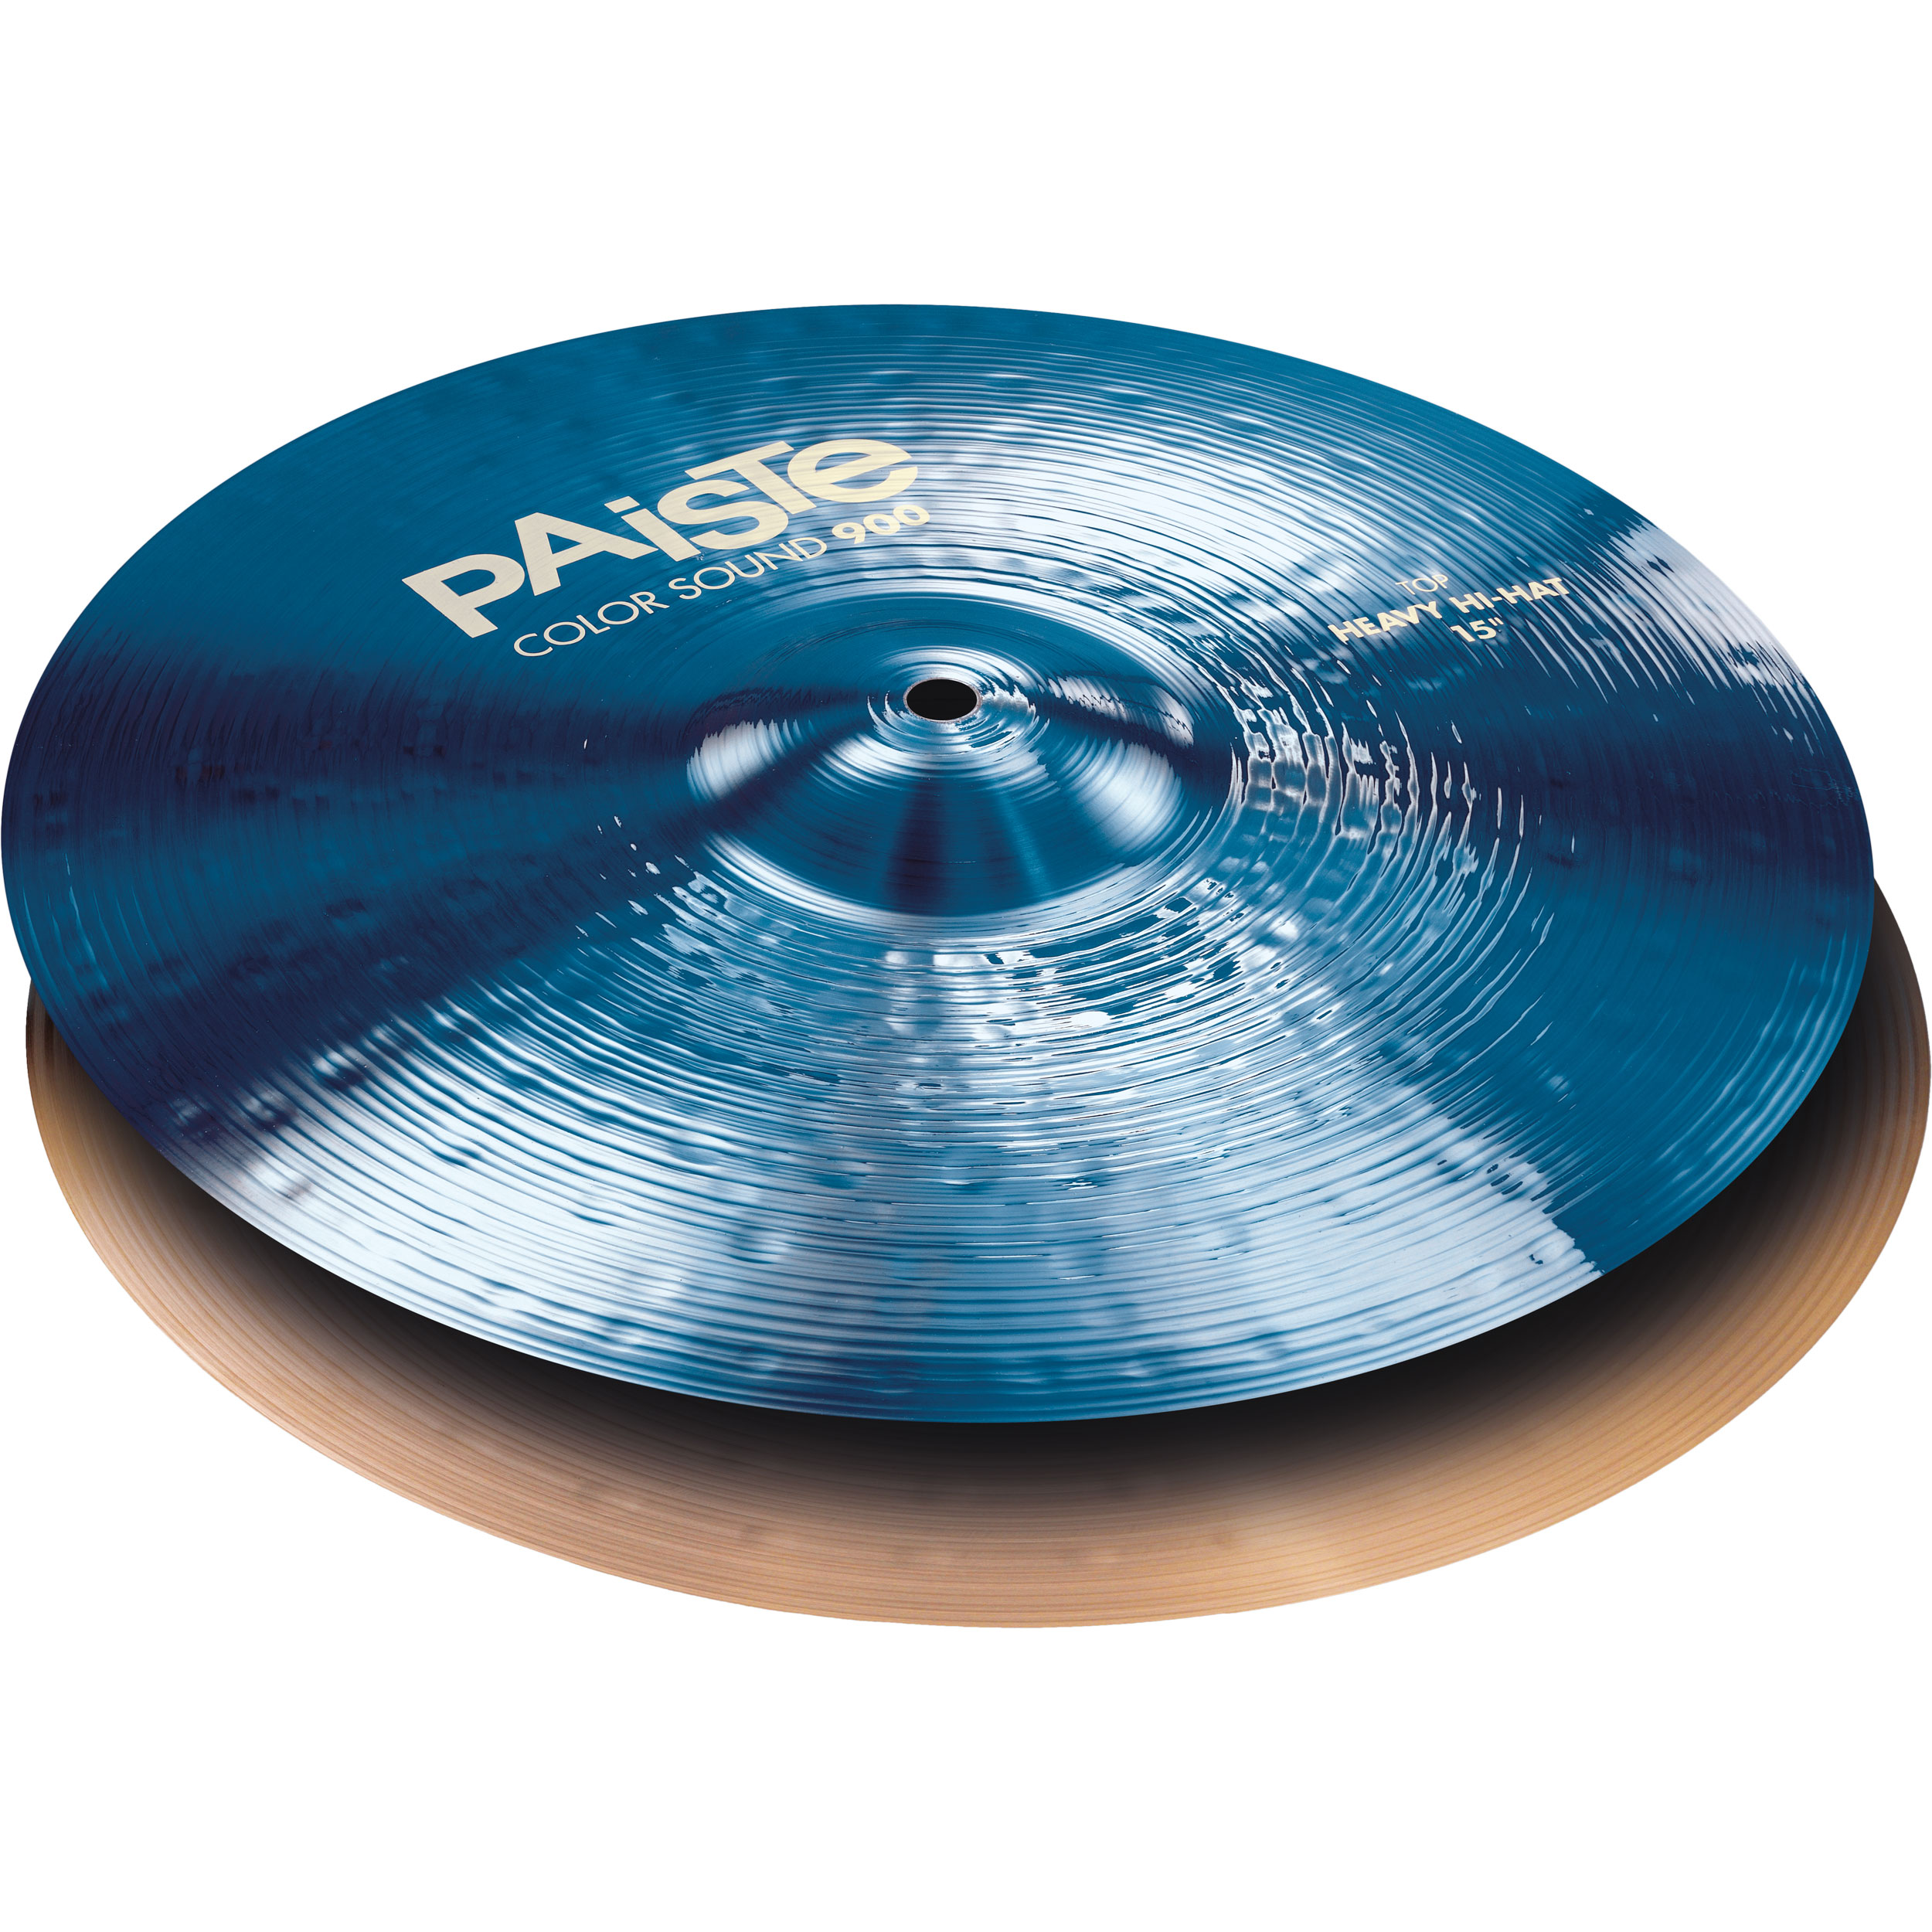 "Paiste 15"" Color Sound 900 Blue Heavy Hi Hat Cymbals"